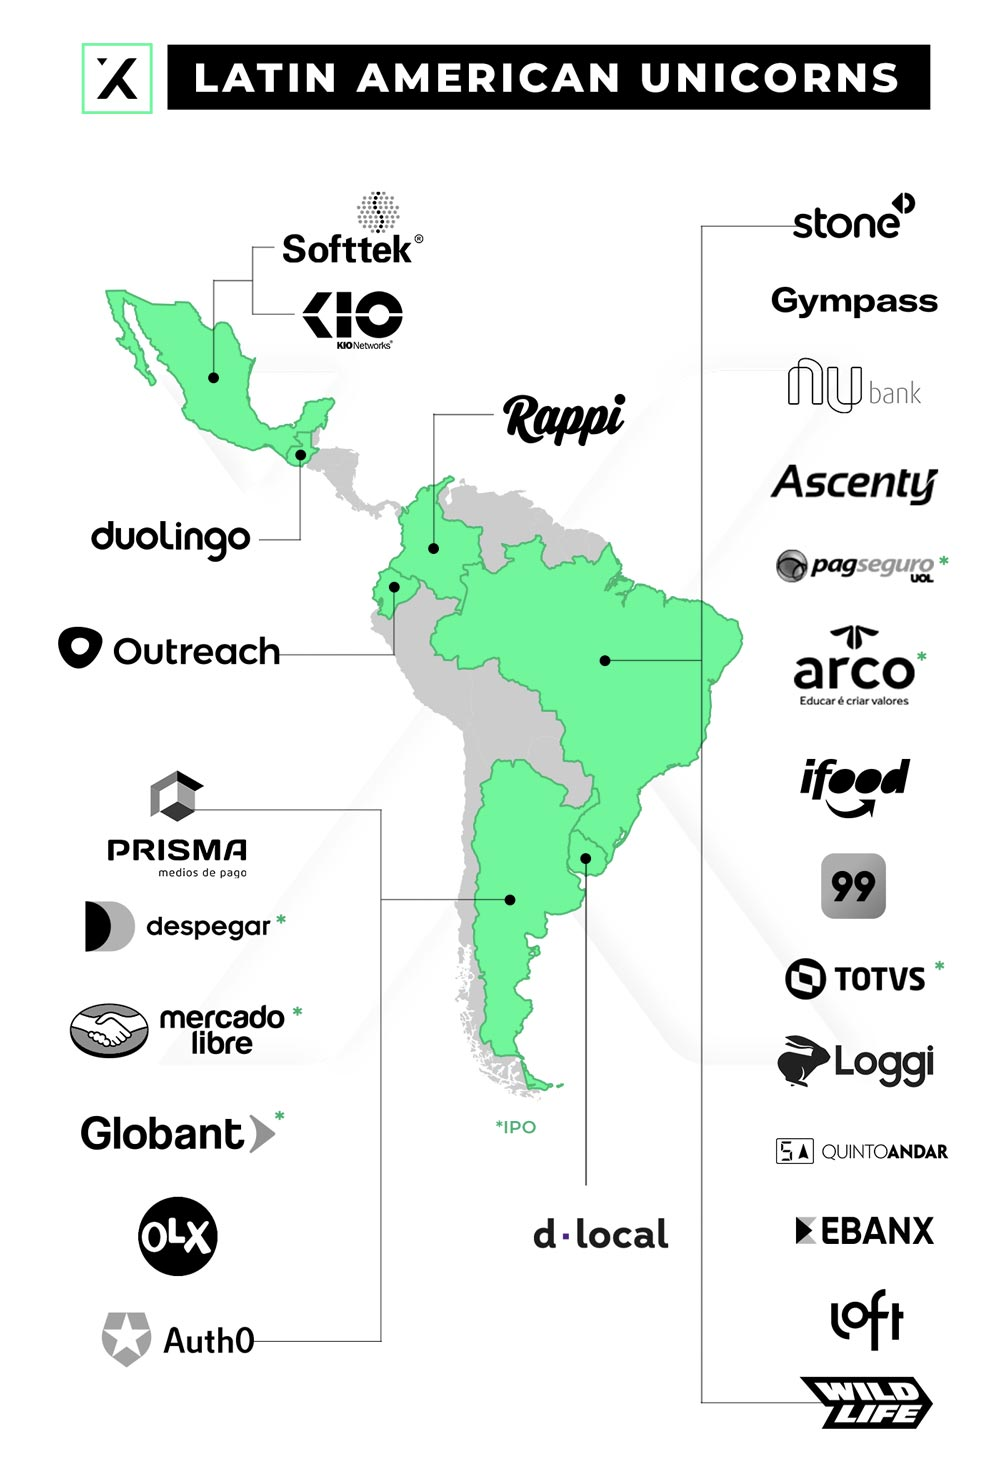 Startup unicorns in Latin America and South America